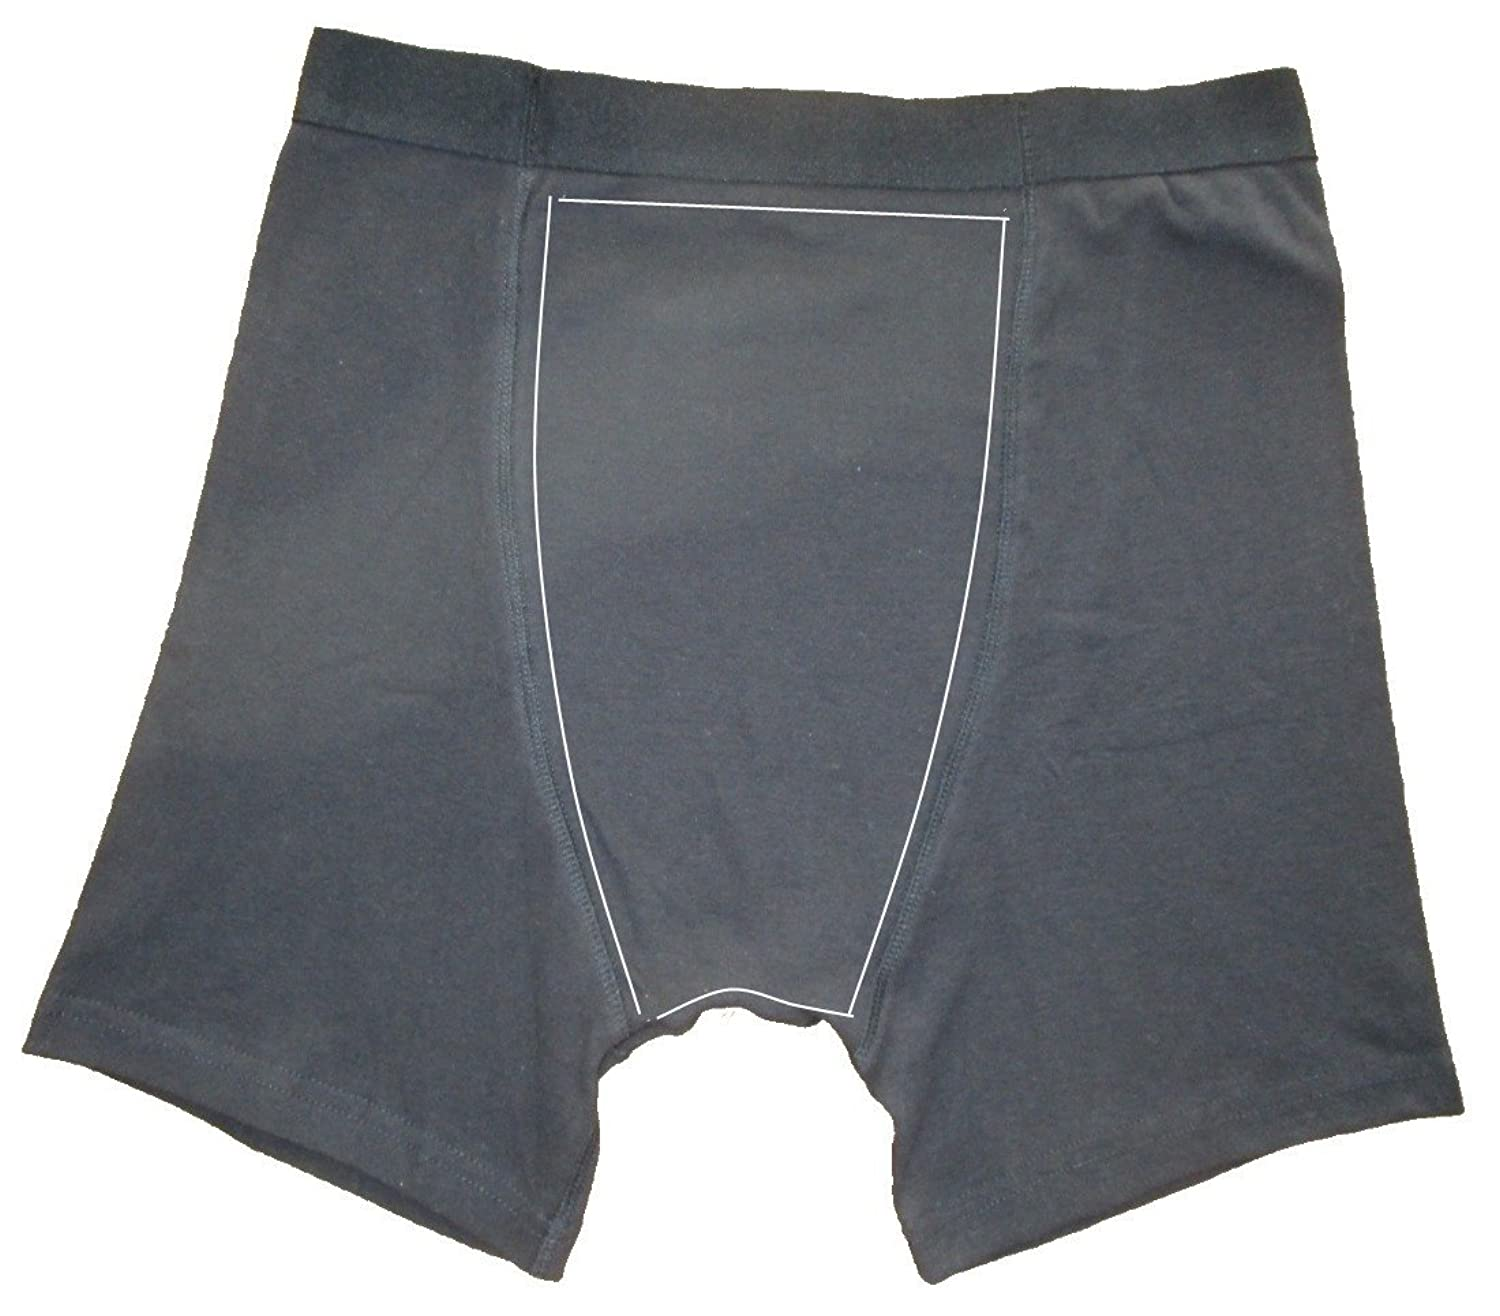 Named the most dangerous underwear 65